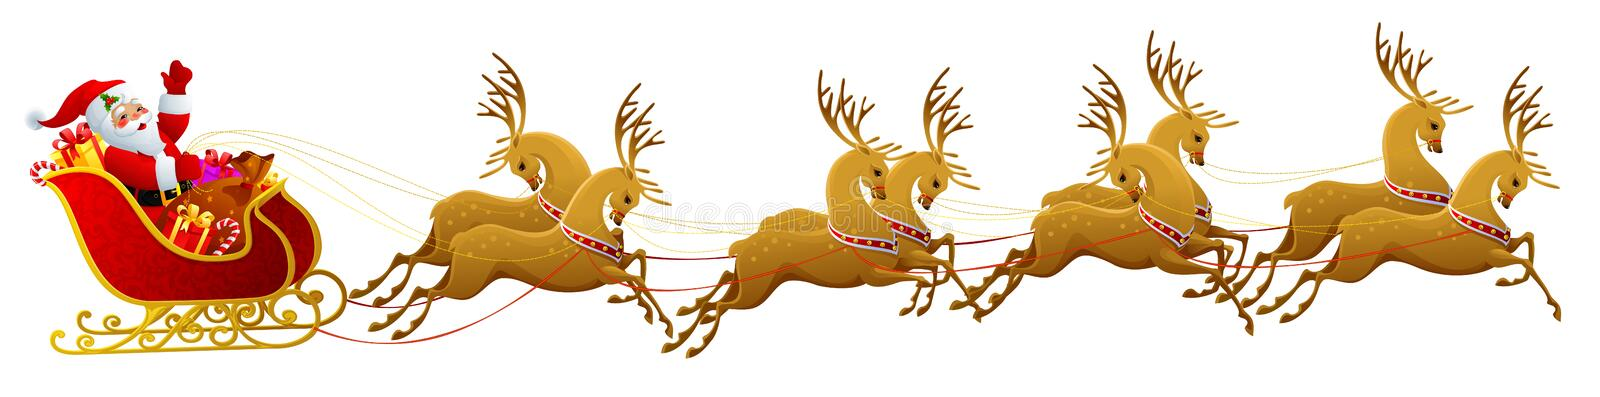 Download Santa Claus sleigh stock illustration. Image of christmas - 6720075